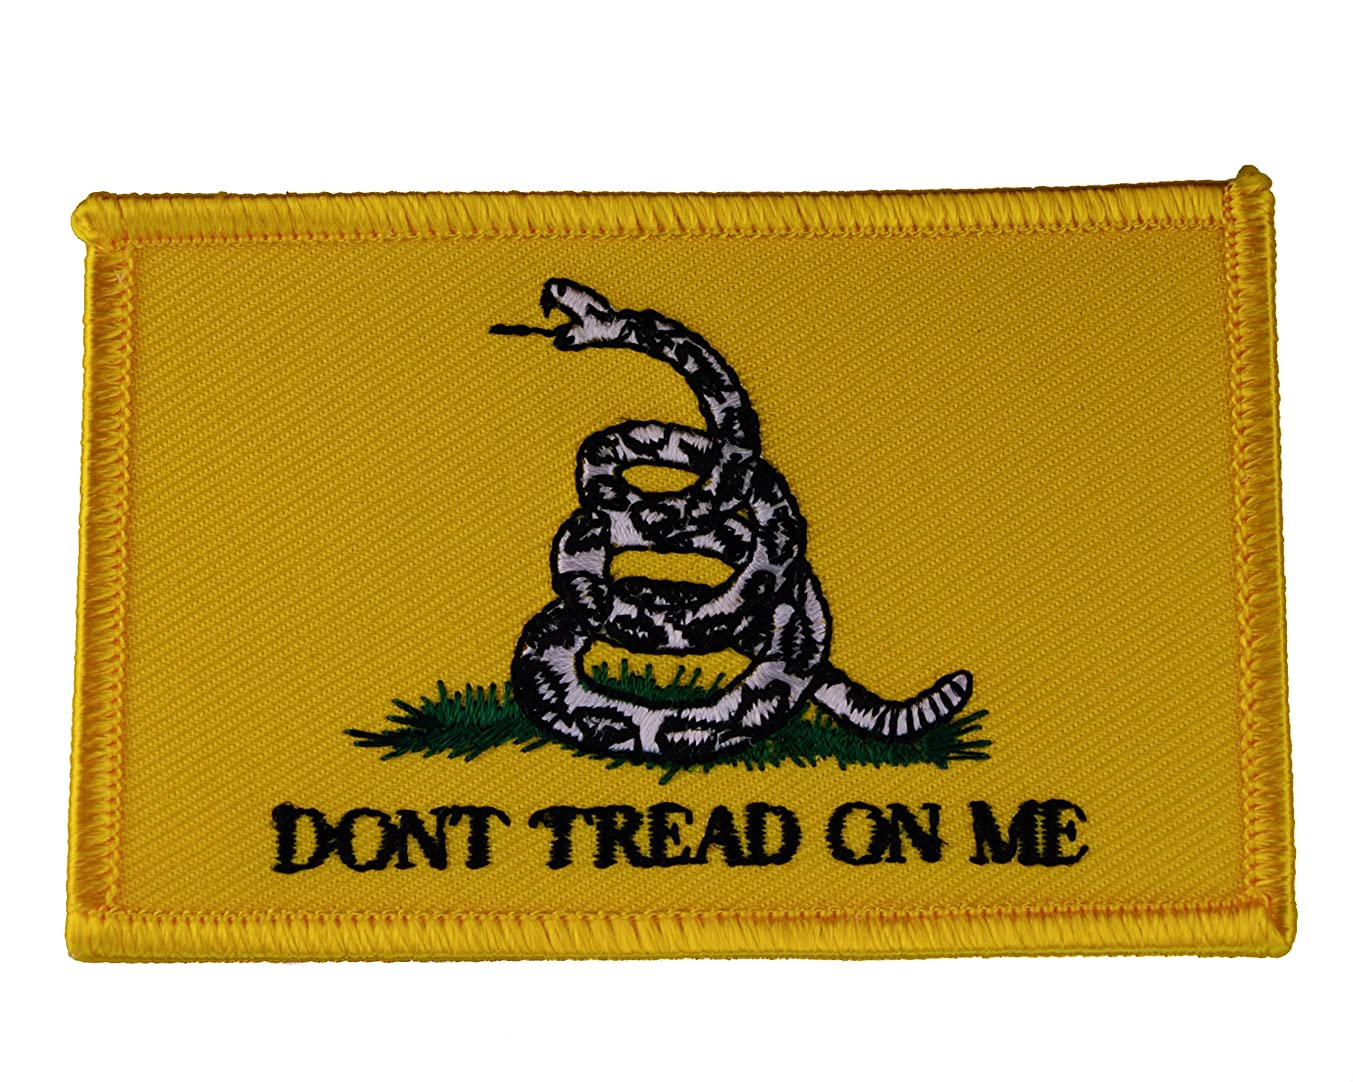 Don't Tread on Me Military Iron or sew on Patch AKPT299